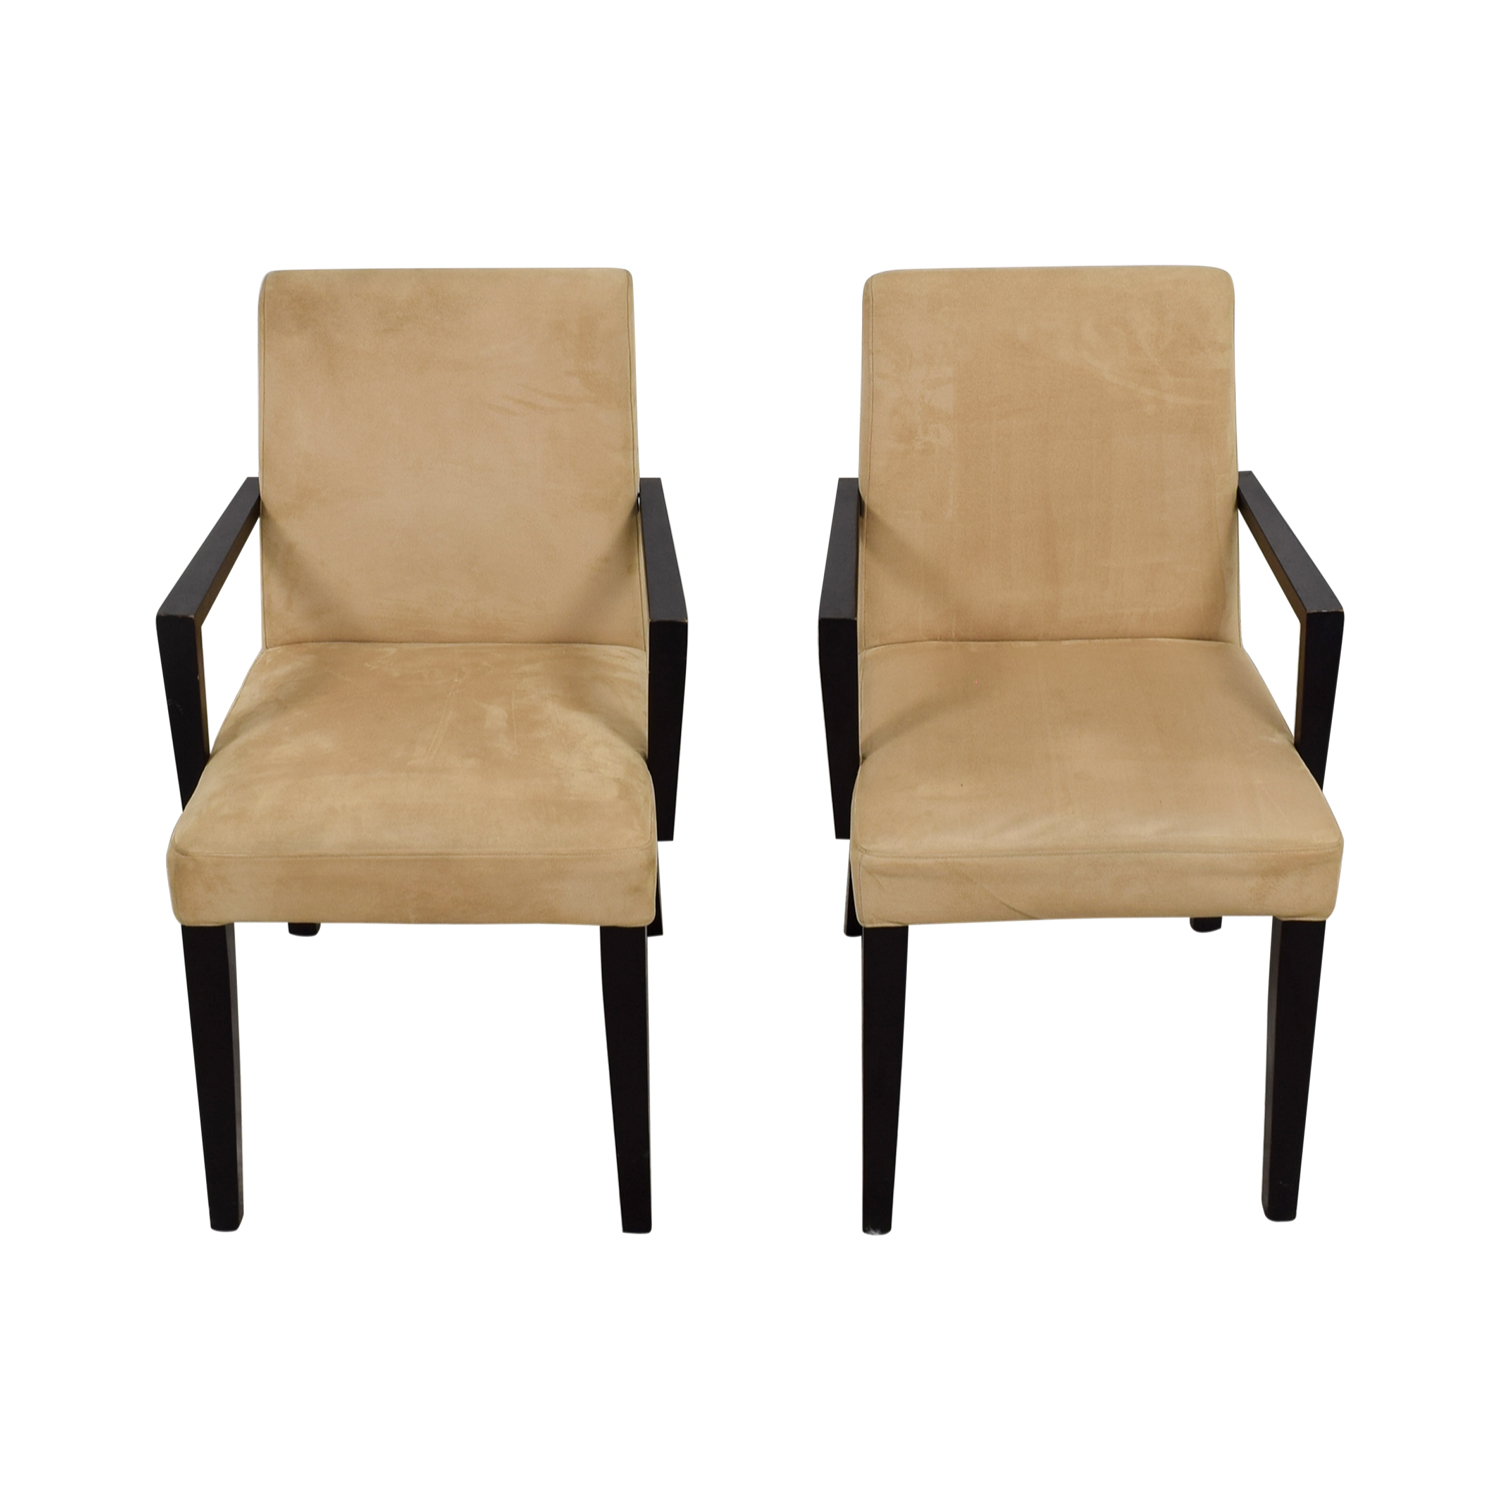 BoConcept BoConcept Genova Tan Suede Chairs on sale